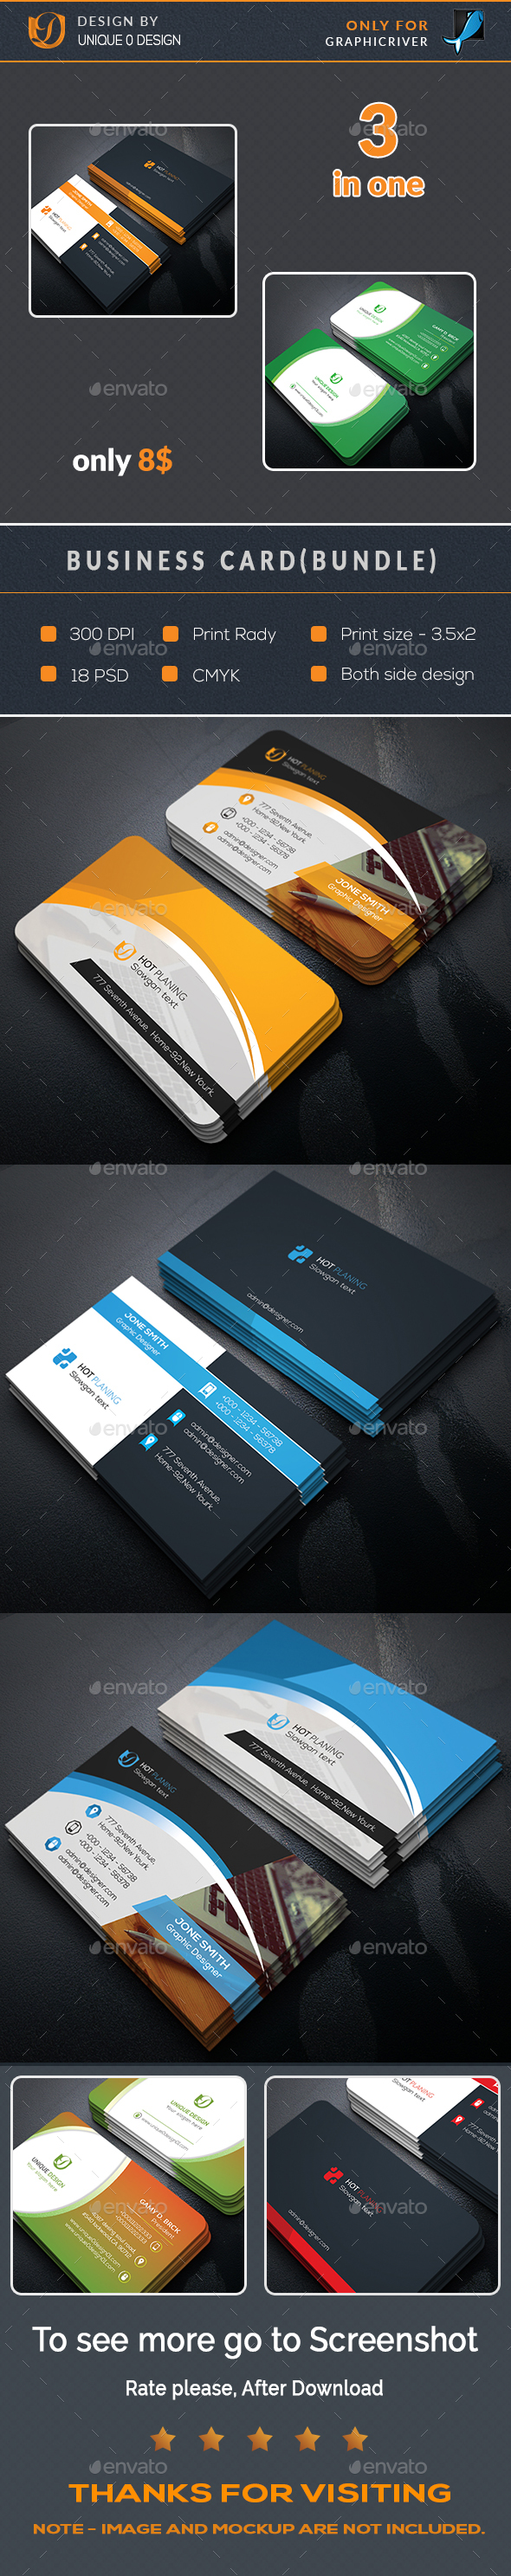 Business card design template bundle business cards print design business card design template bundle business cards print design template psd download flashek Choice Image